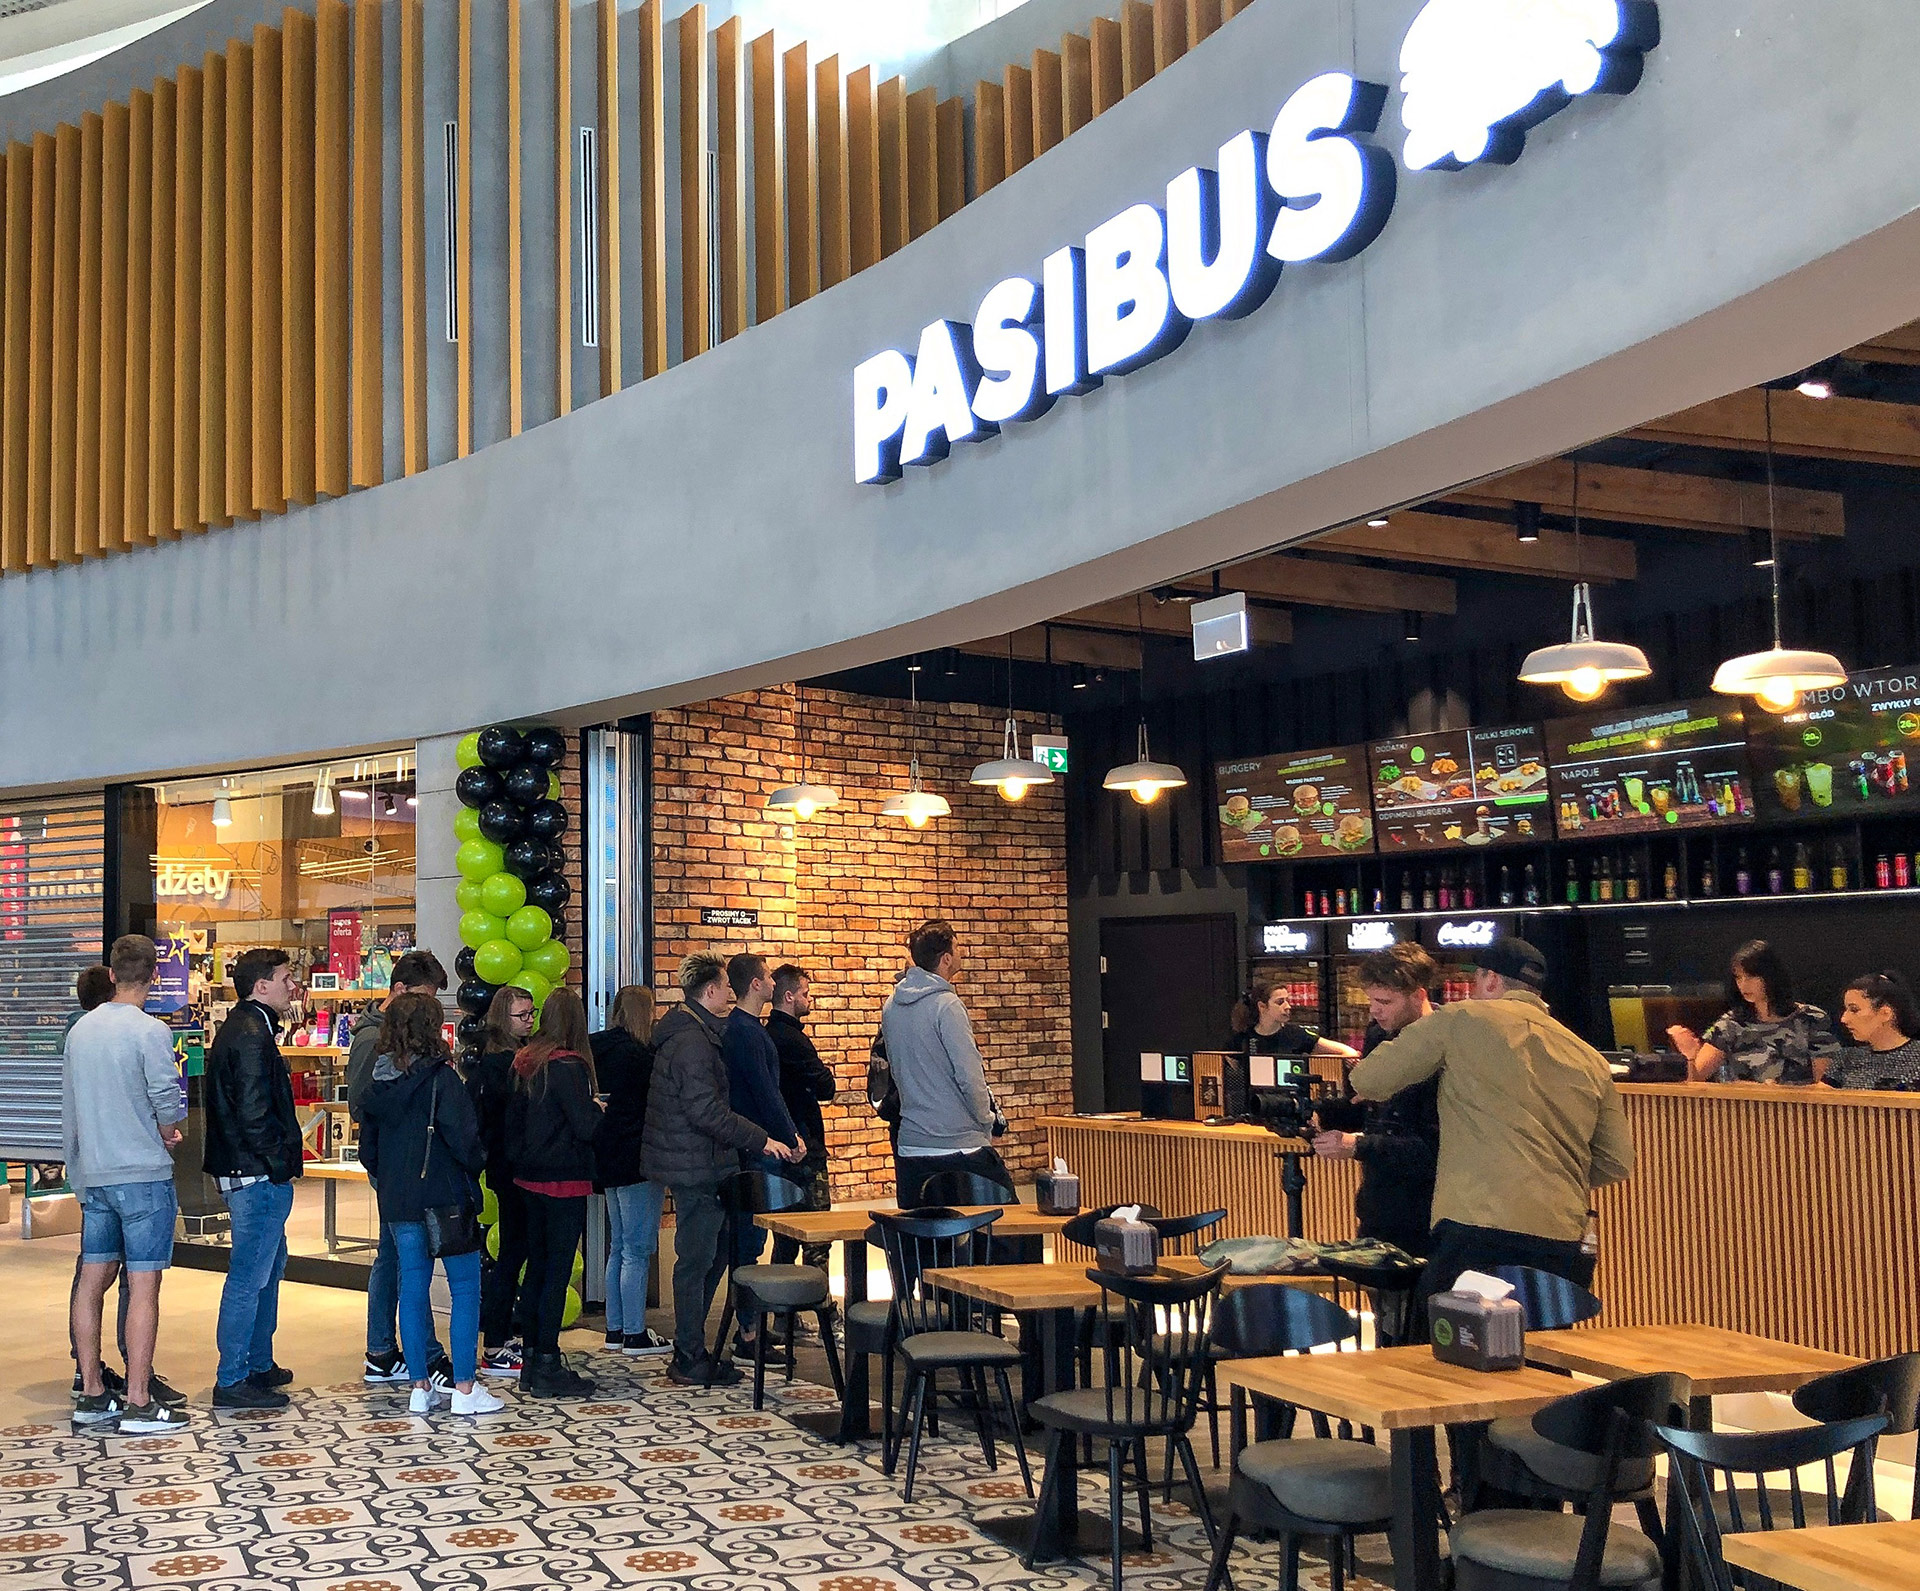 Pasibus Silesia City Center Bar